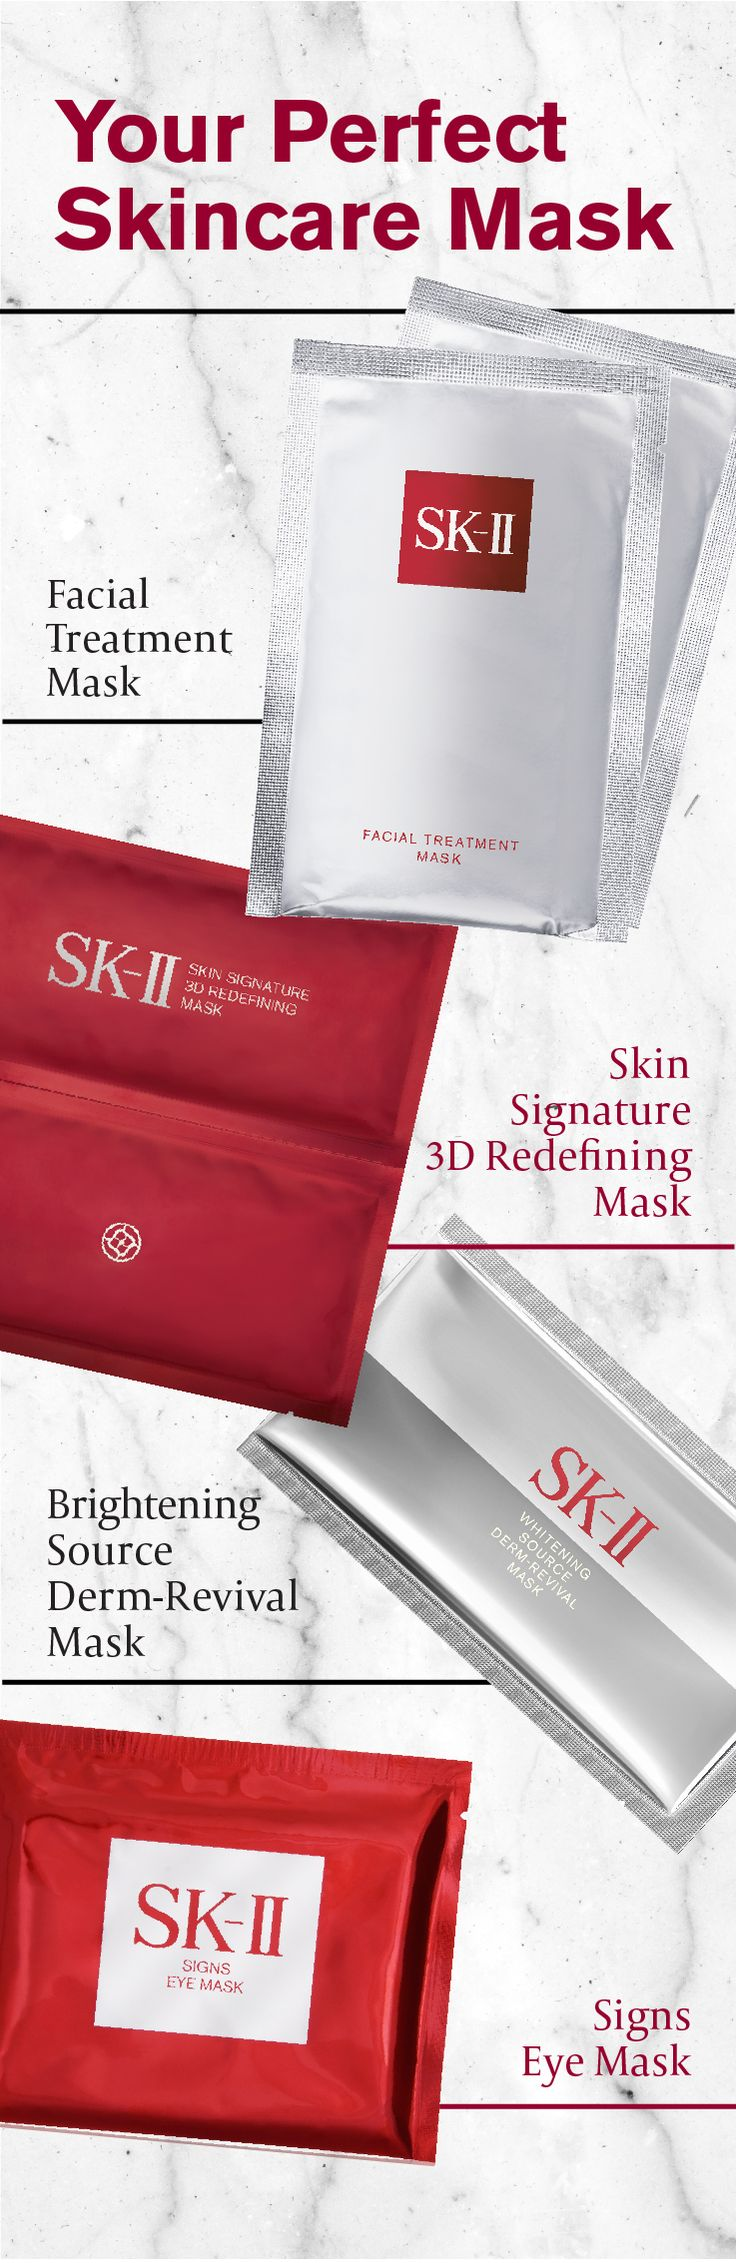 There are so many different face masks to choose from, how do you choose the right one for you? Luckily, SK-II offers a variety of facial masks to create healthy, beautiful skin for anyone. Try the Facial Treatment Mask for hydration, the Skin Signature 3D Refining Mask for firming, the Brightening Source Derm-Revival Mask for glow, and the Signs Eye Mask for eye brightening! Add one to your routine to reveal your skin's radiance.